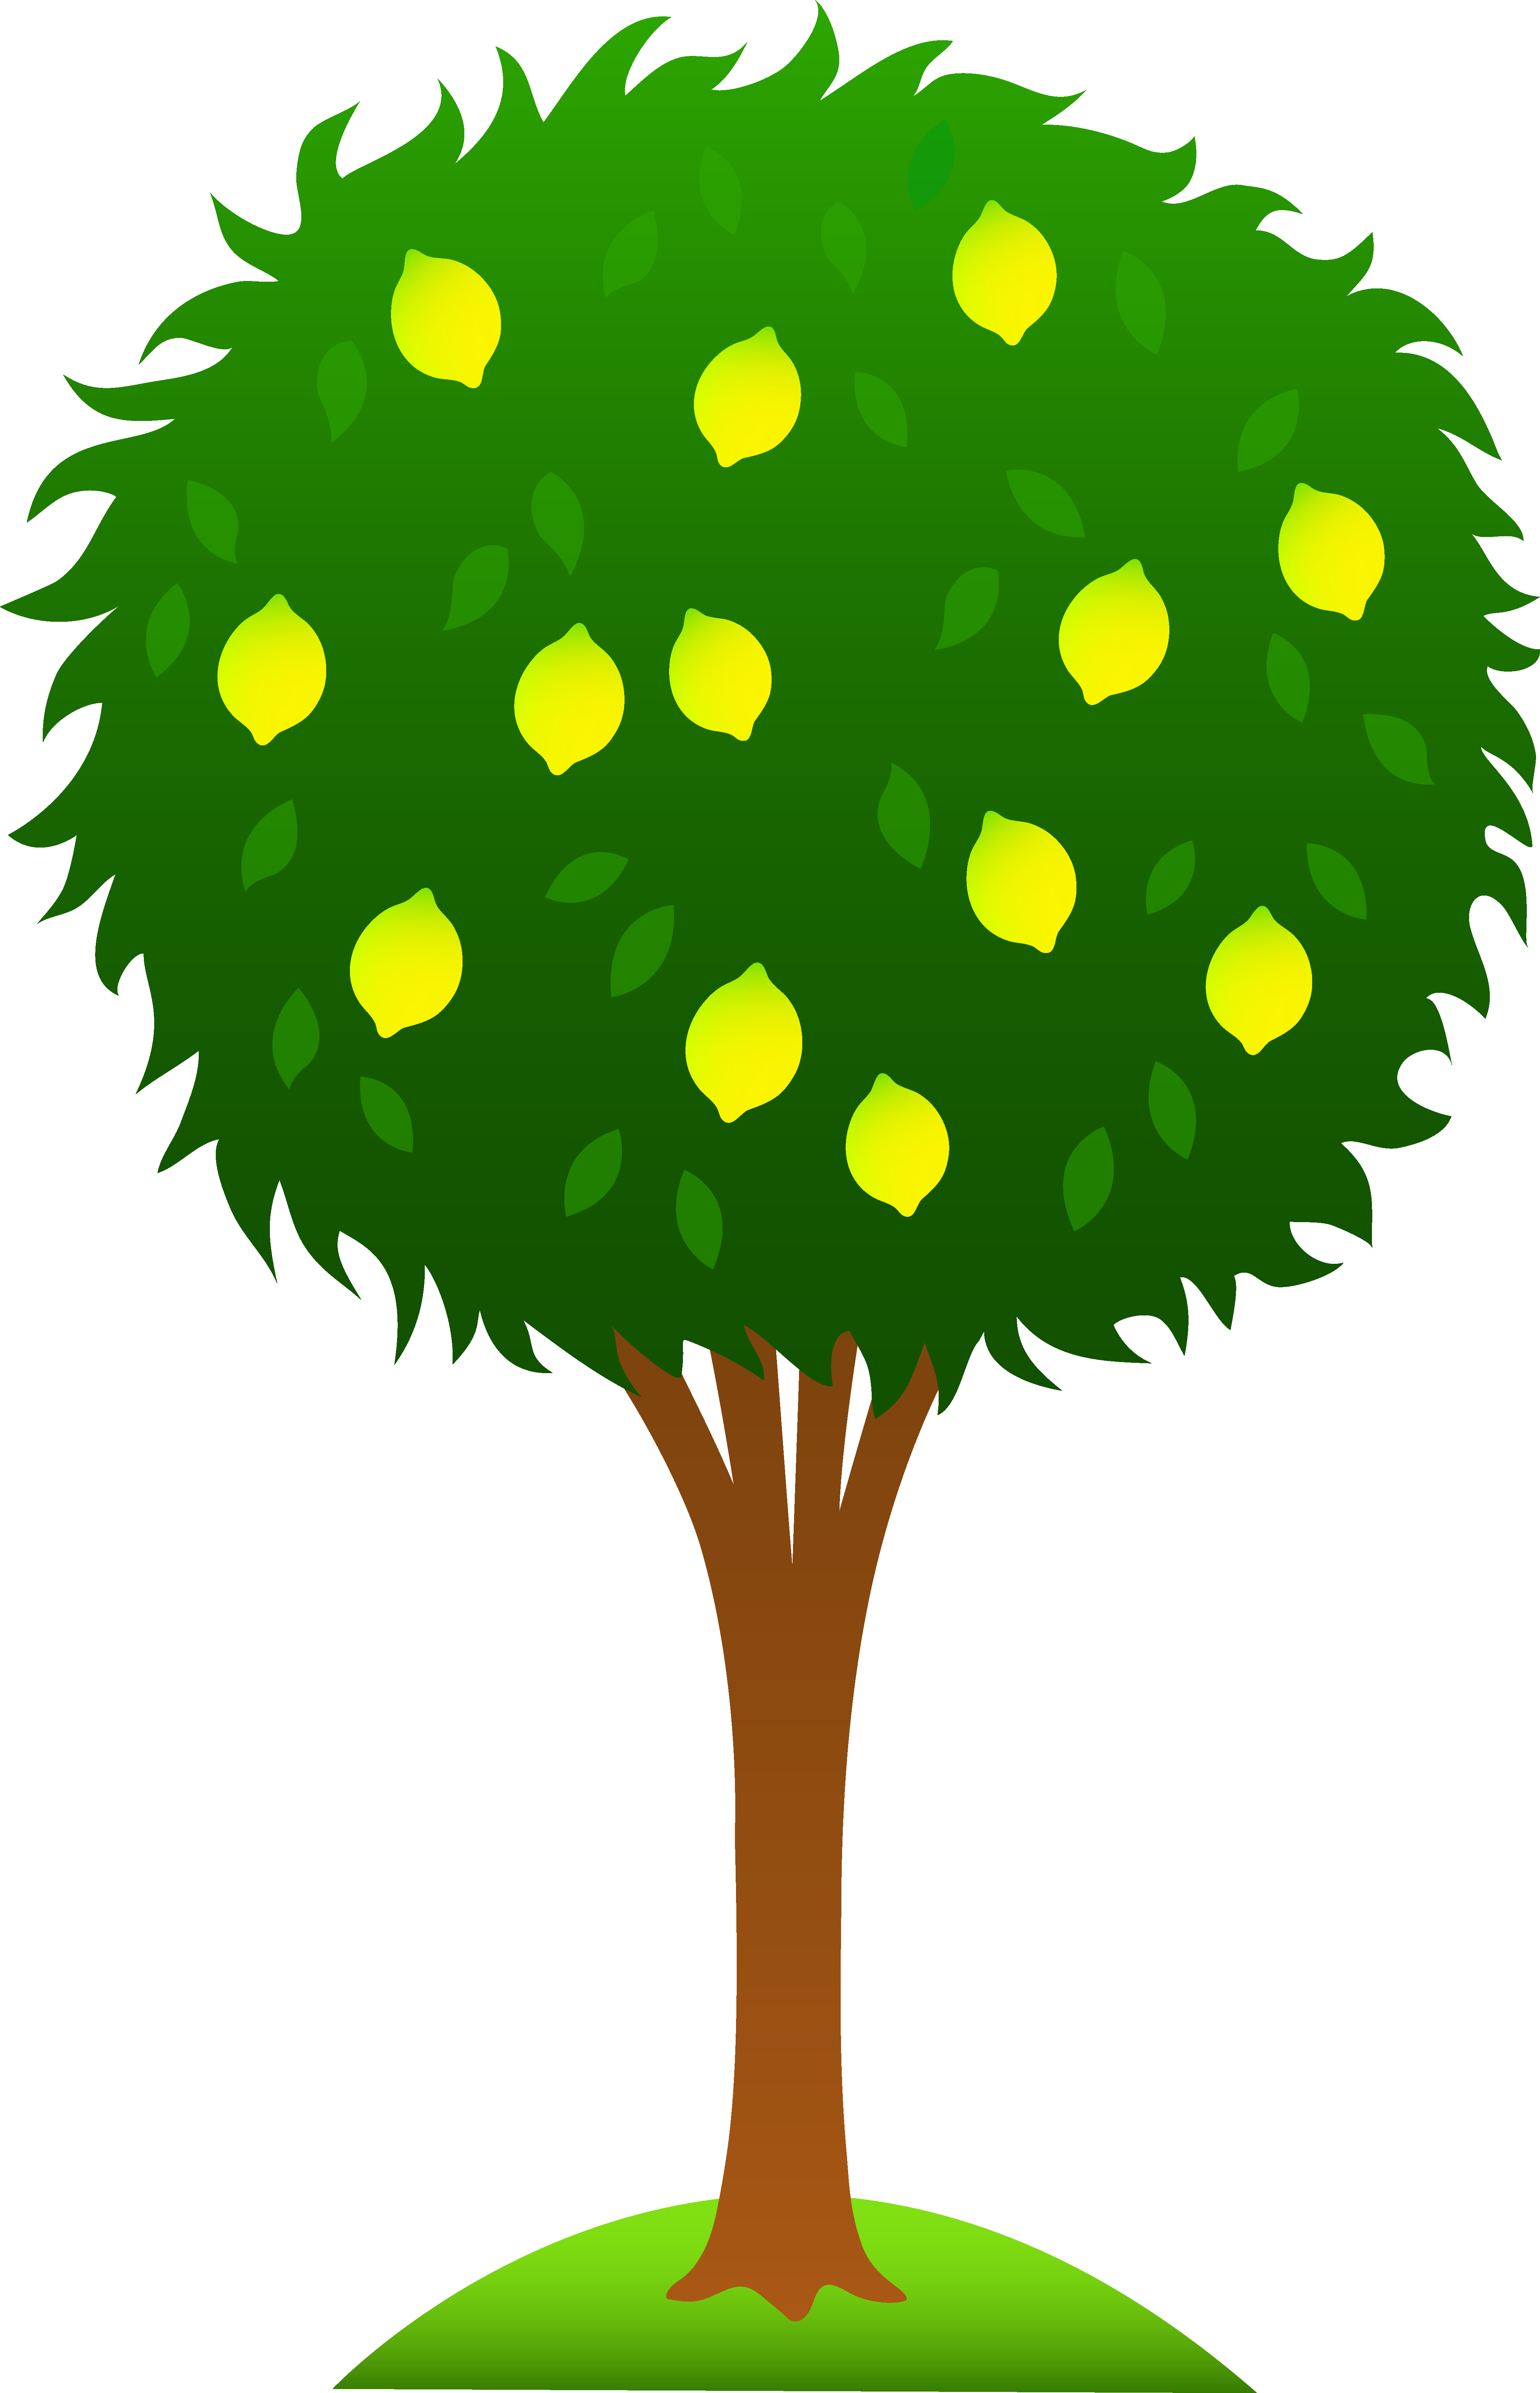 Tree stick clipart clipart transparent download cartoon lemon tree clipart | Lemon | Pinterest | Clip art and Art images clipart transparent download